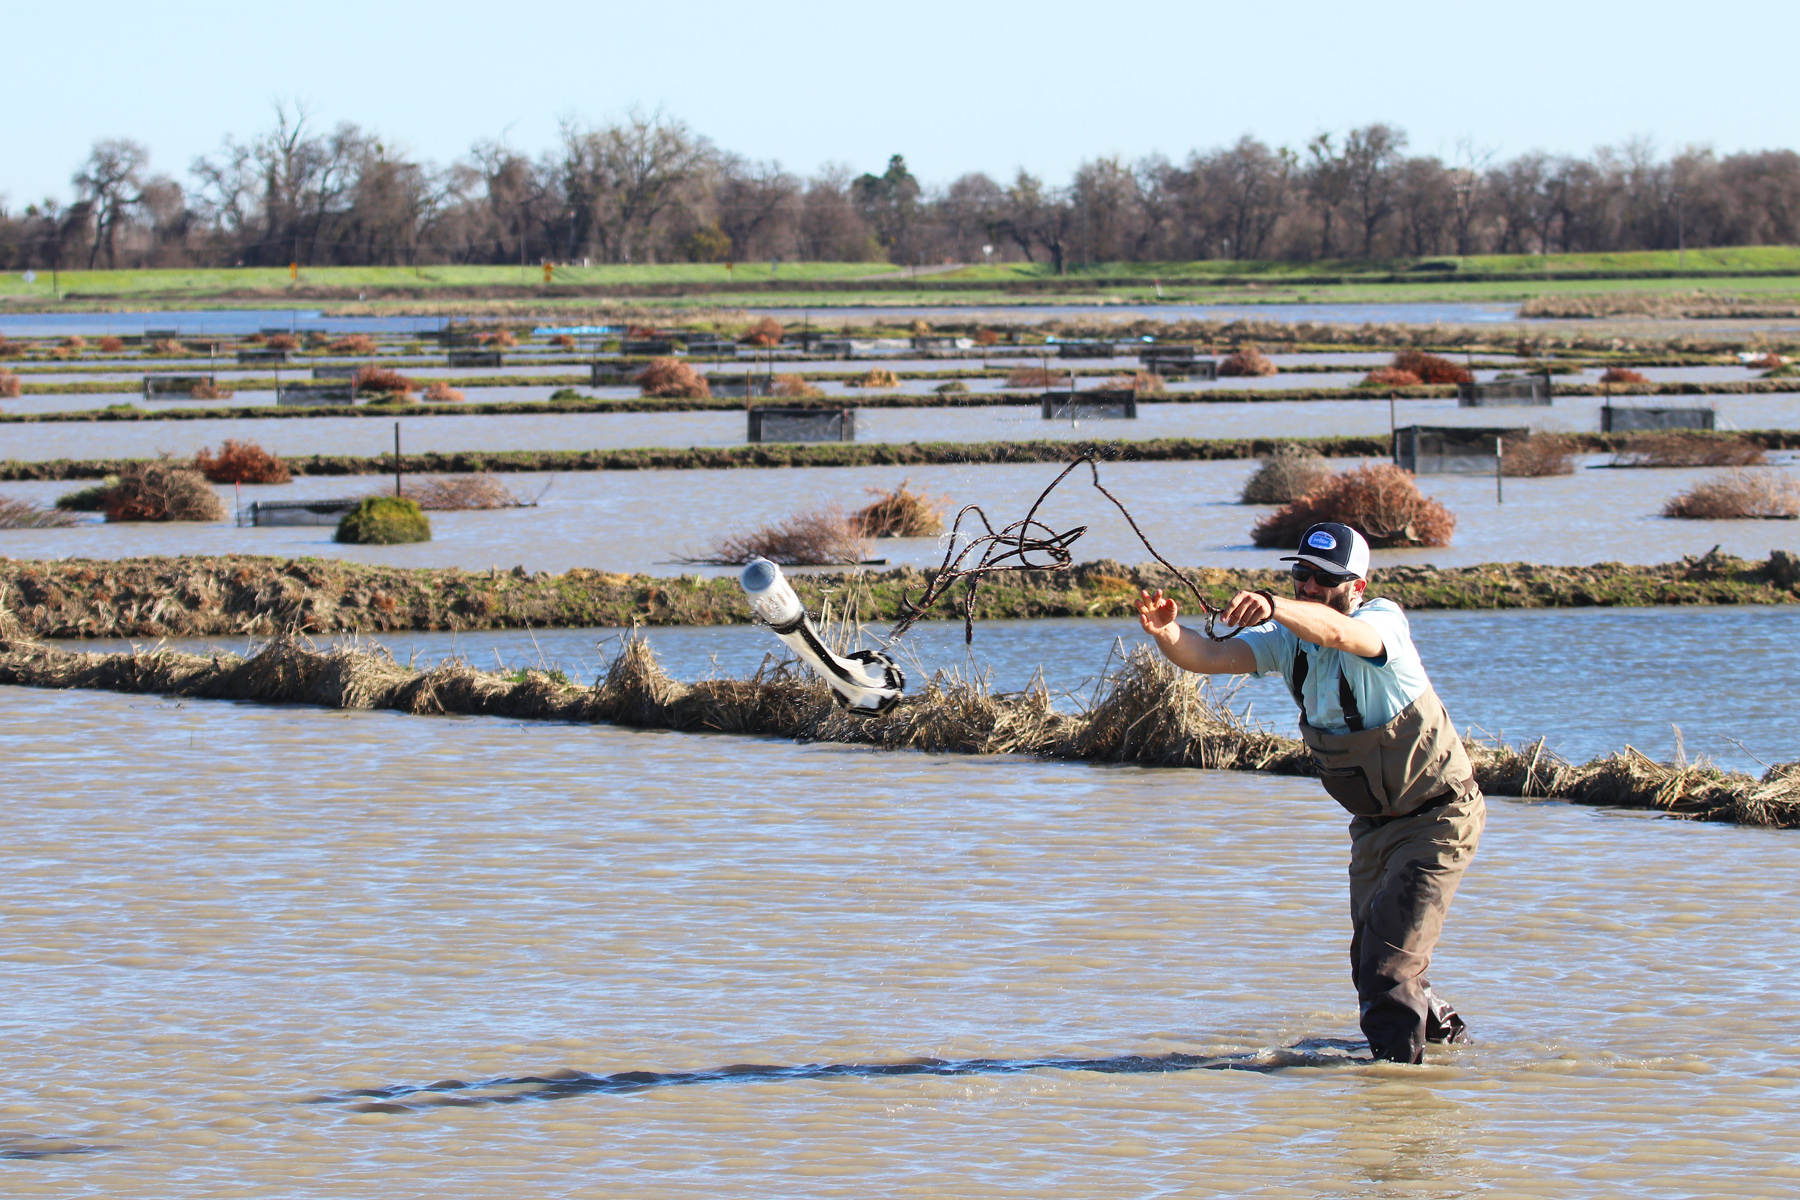 Jacob Montgomery, Project Manager for California Trout, tossing out a zooplankton net